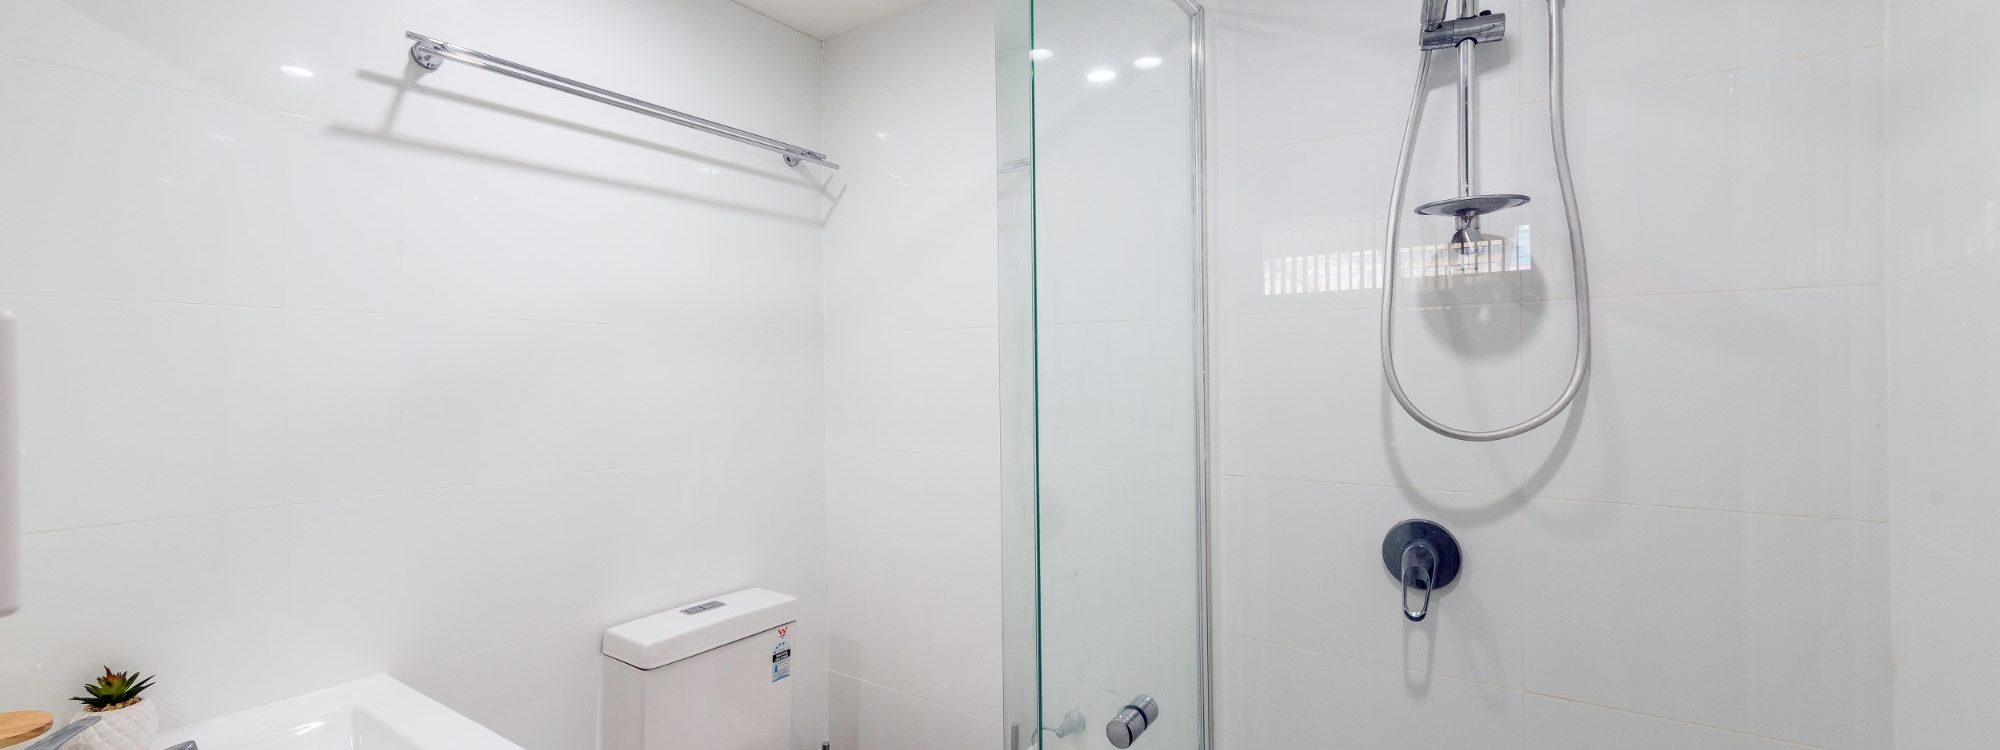 Villa on the Boulevard - Hooker Boulevard, Broadbeach - Ensuite bathroom to Master Bedroom